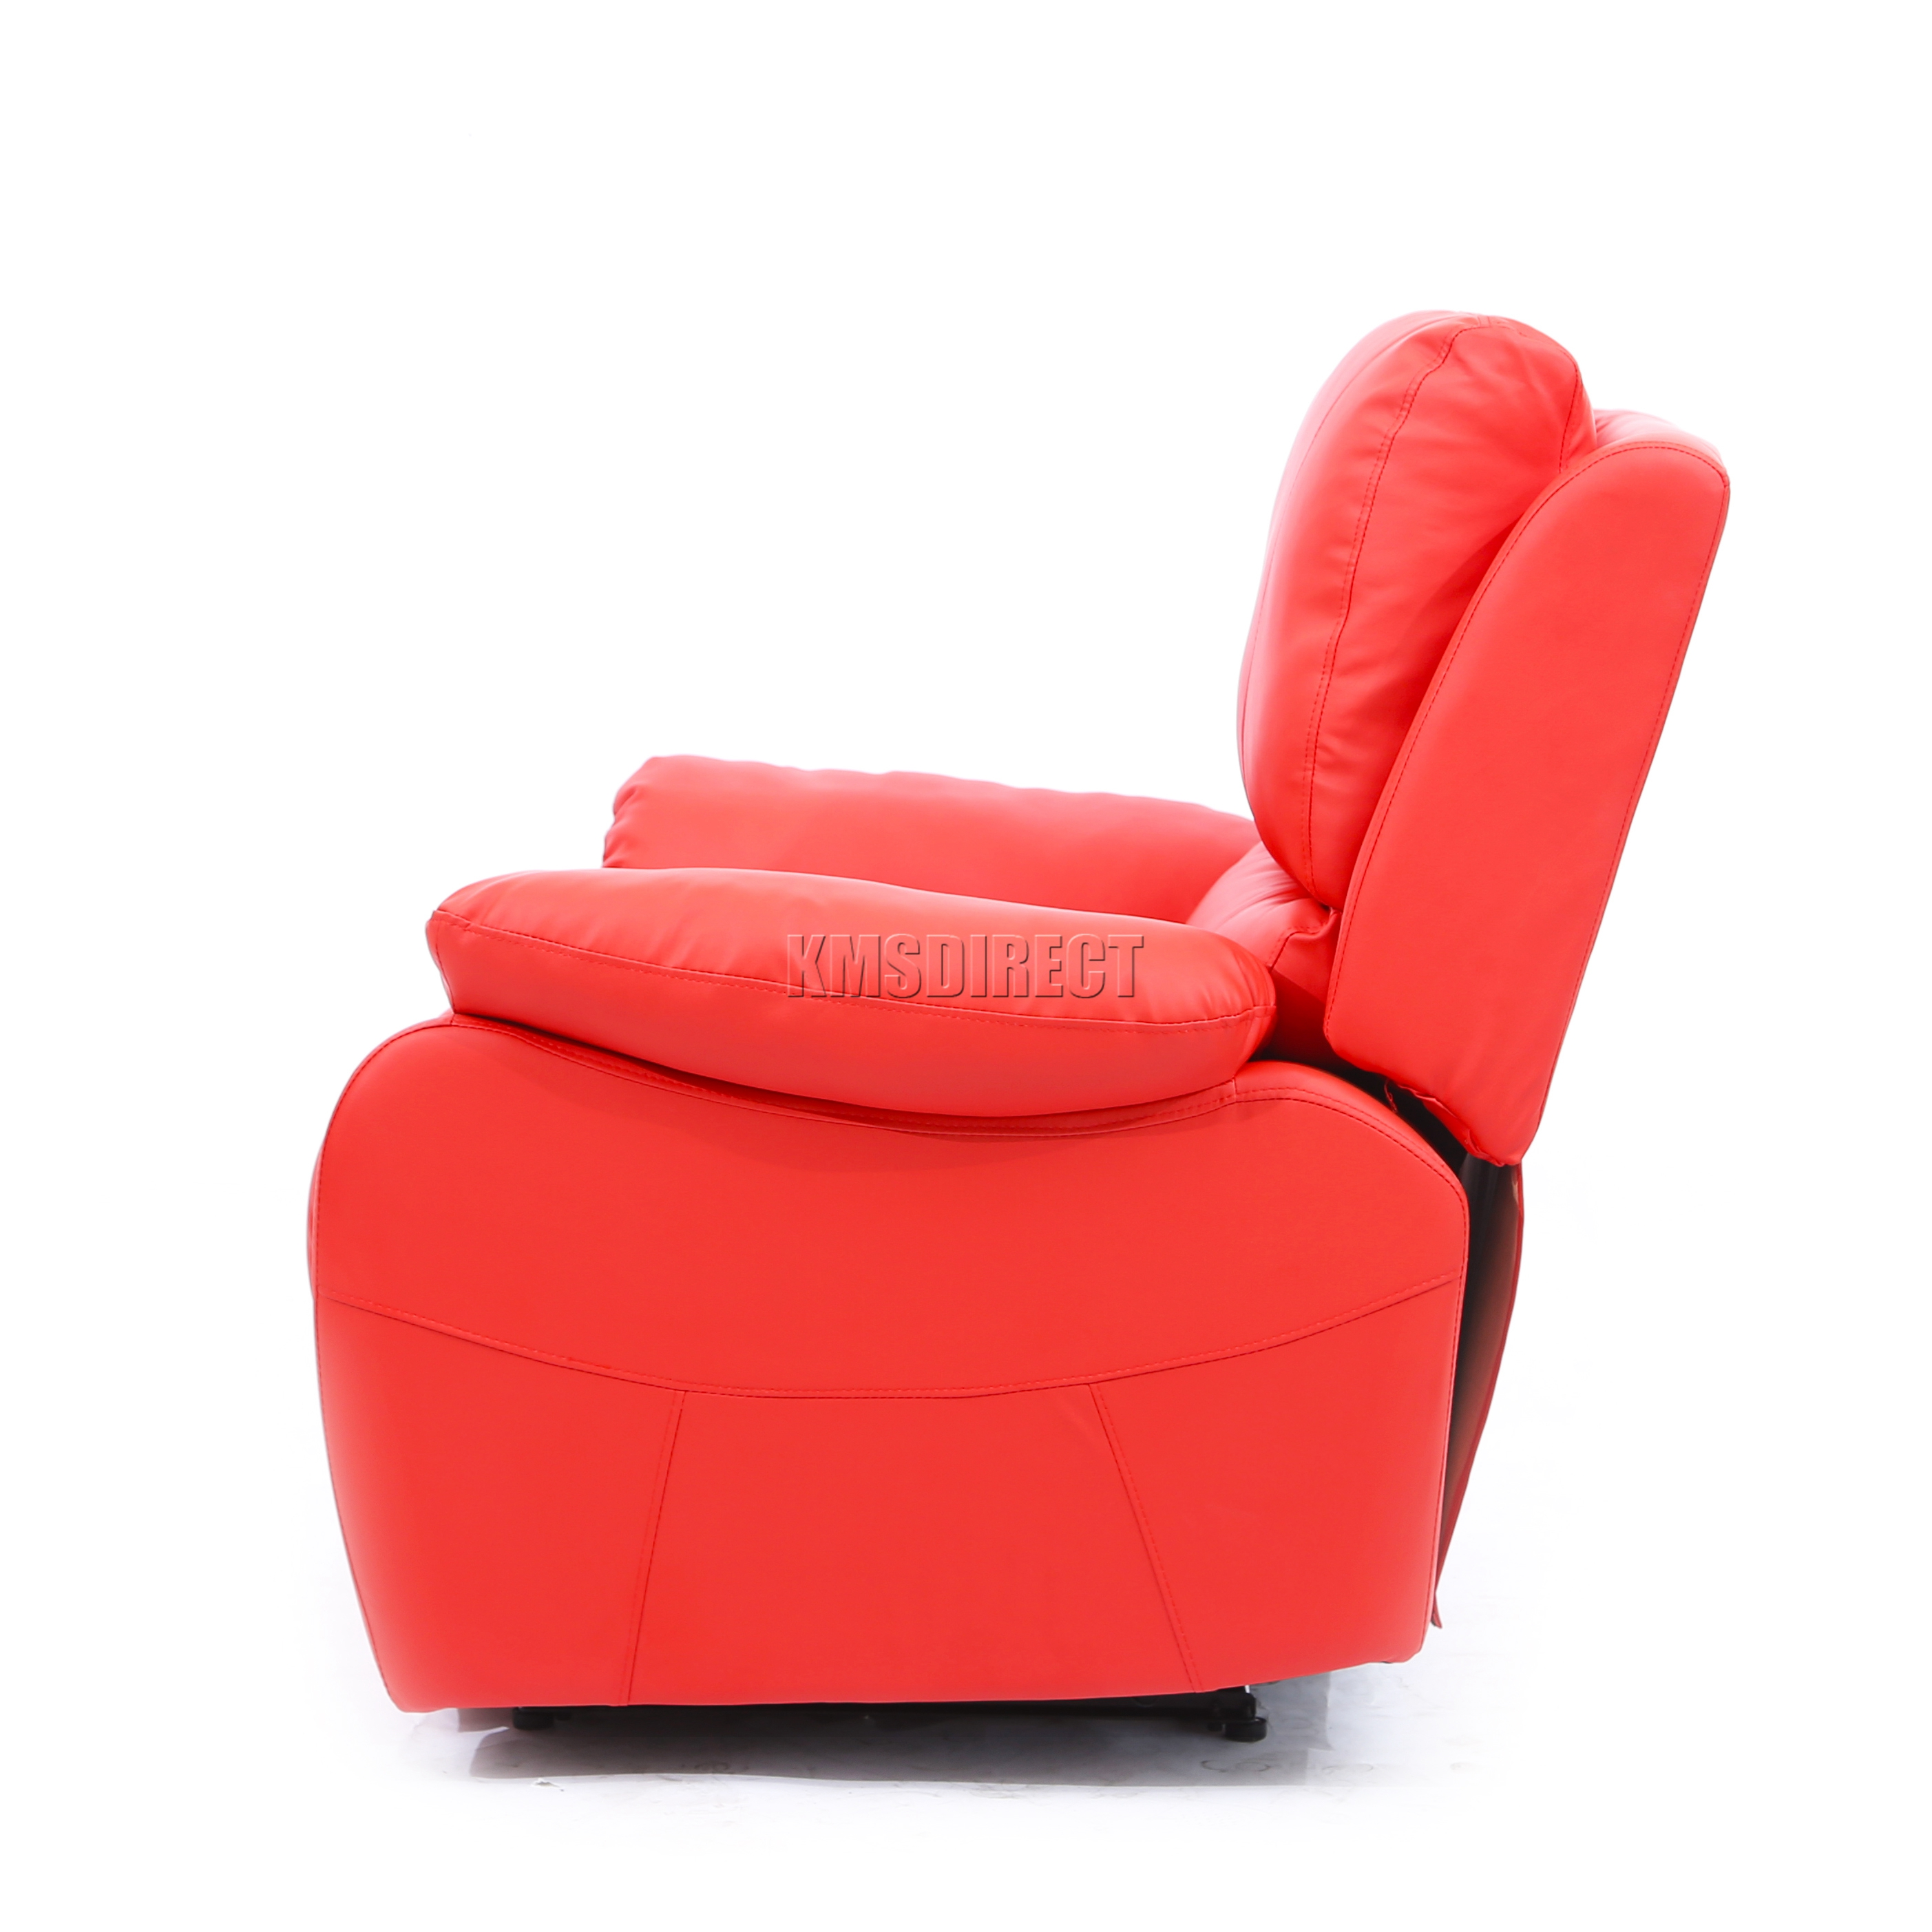 foxhunter luxe 1 place cuir cinema fauteuil inclinable canap chaise rs01 rouge ebay. Black Bedroom Furniture Sets. Home Design Ideas